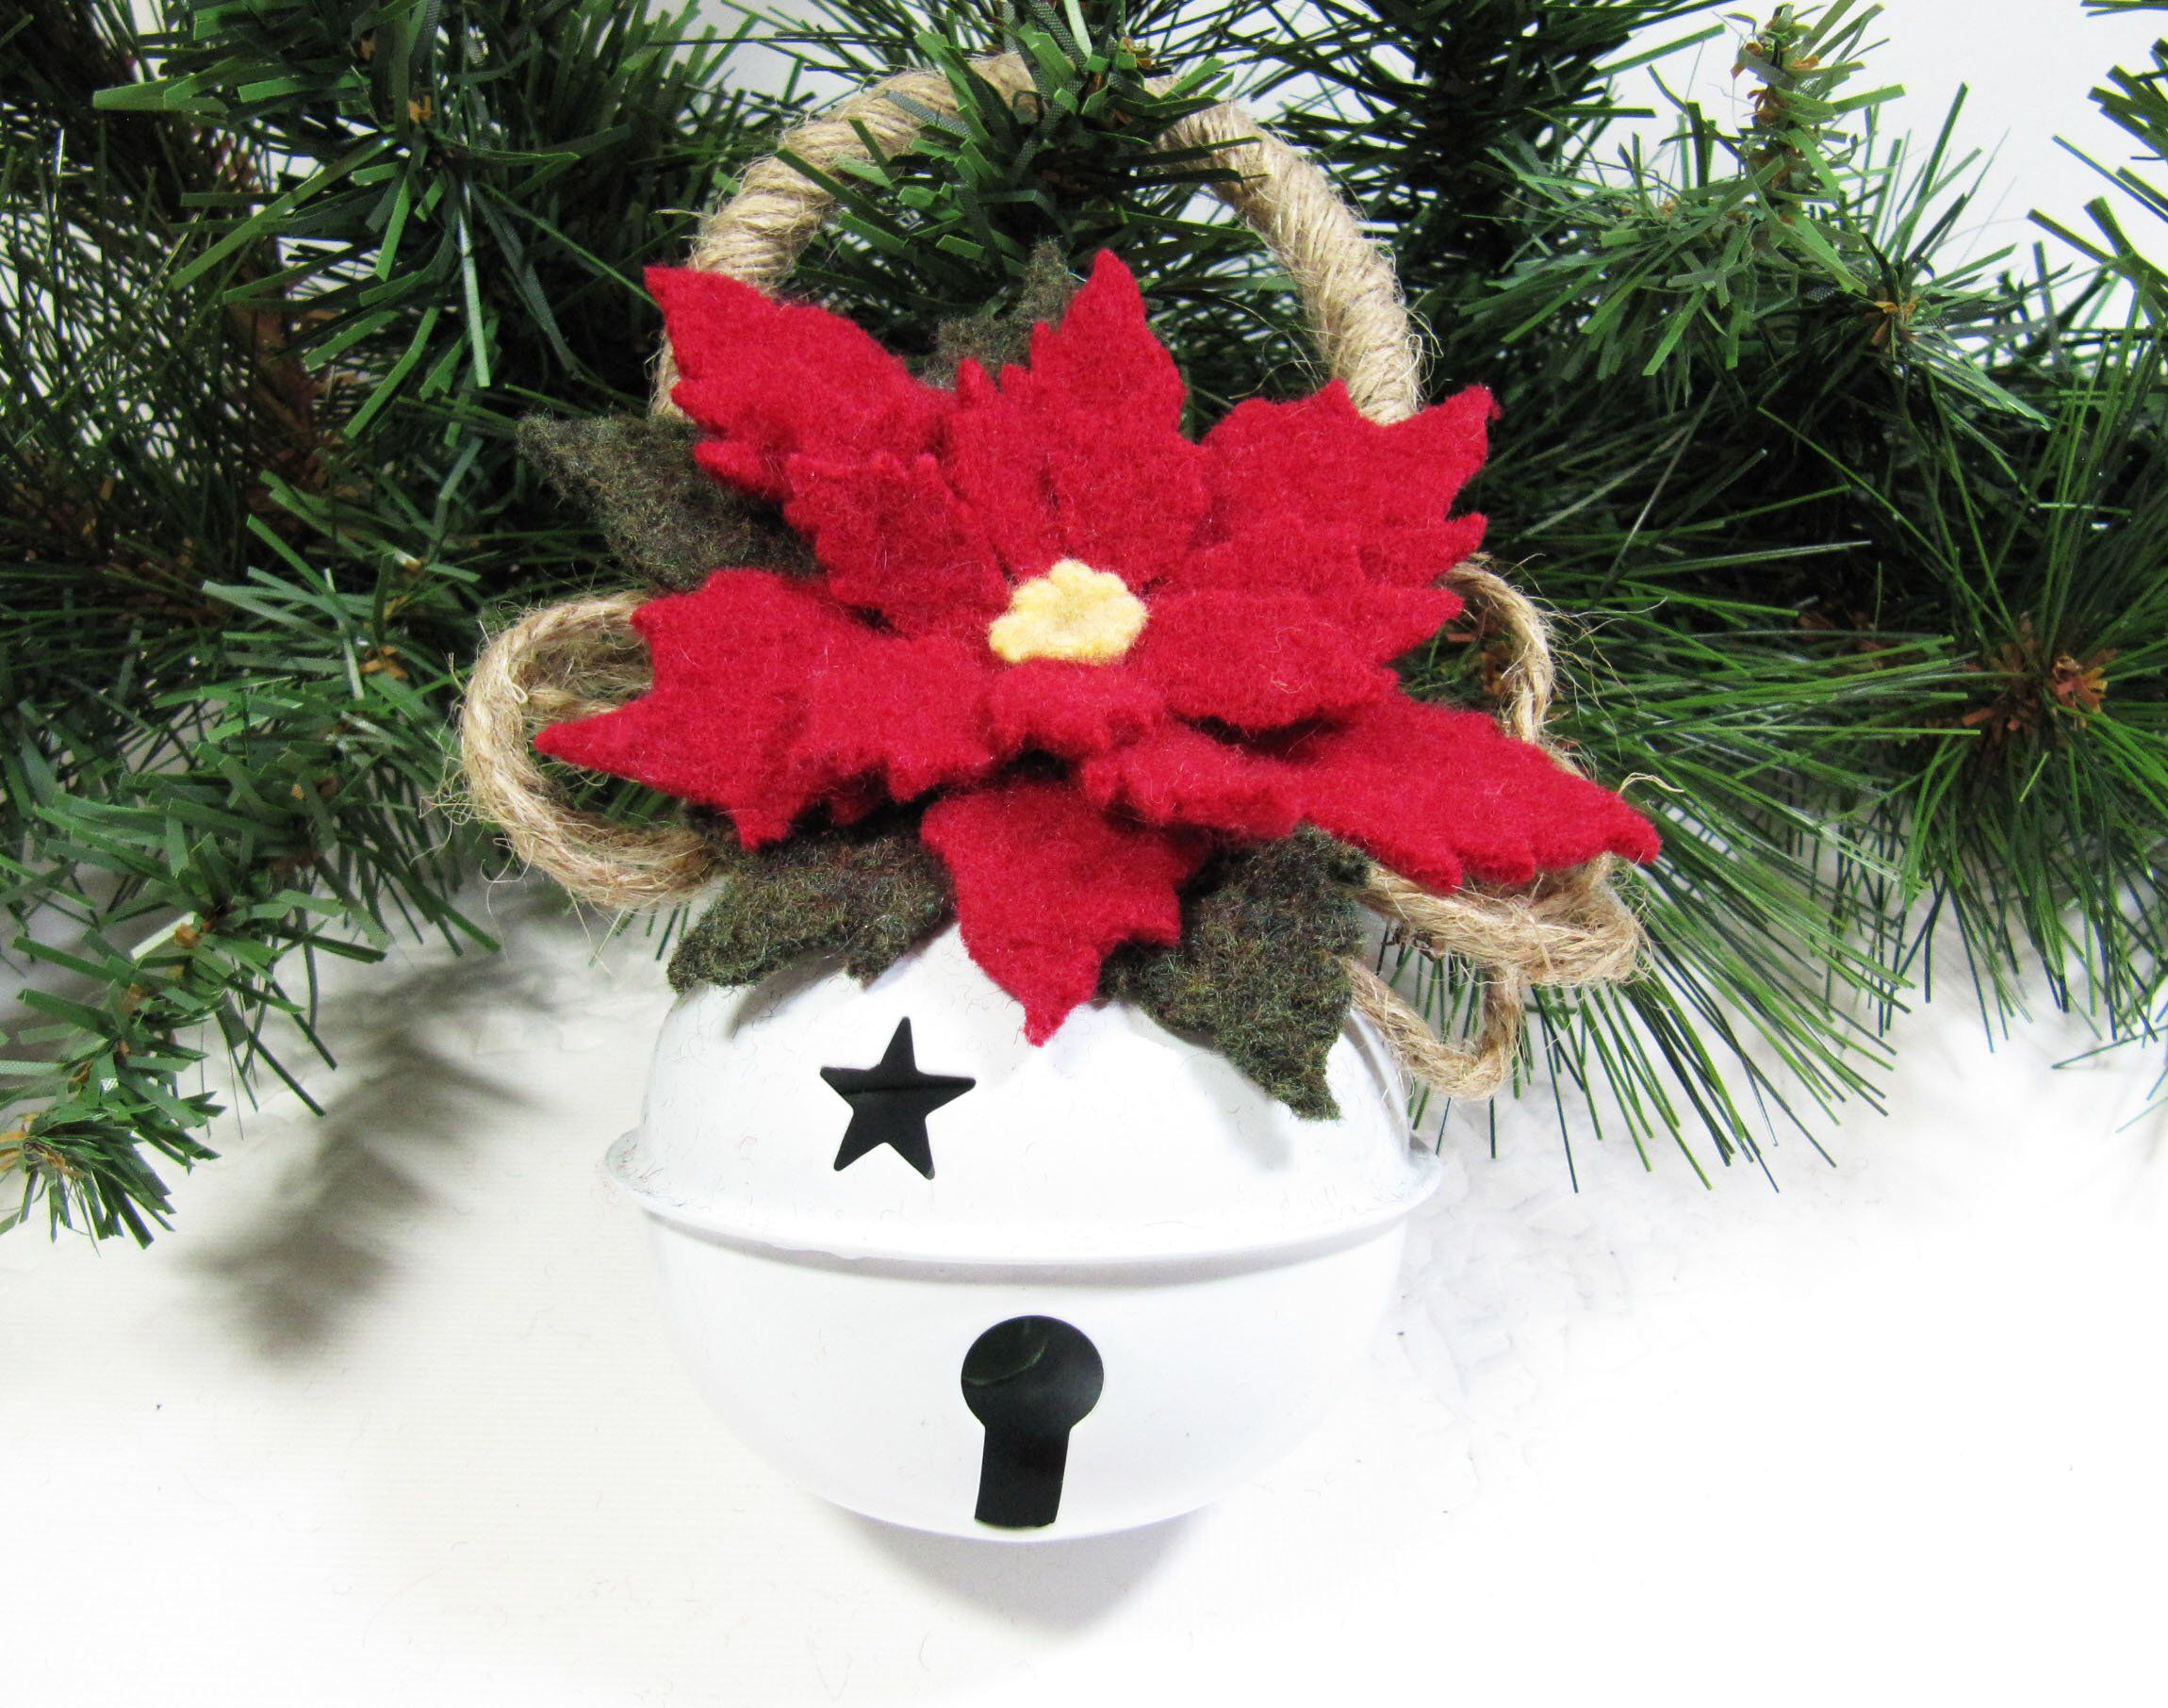 Jingle Bell Christmas Tree Ornament Wool Felt Poinsettia Christmas Holiday Decoration Decor Hostess Teacher Gift